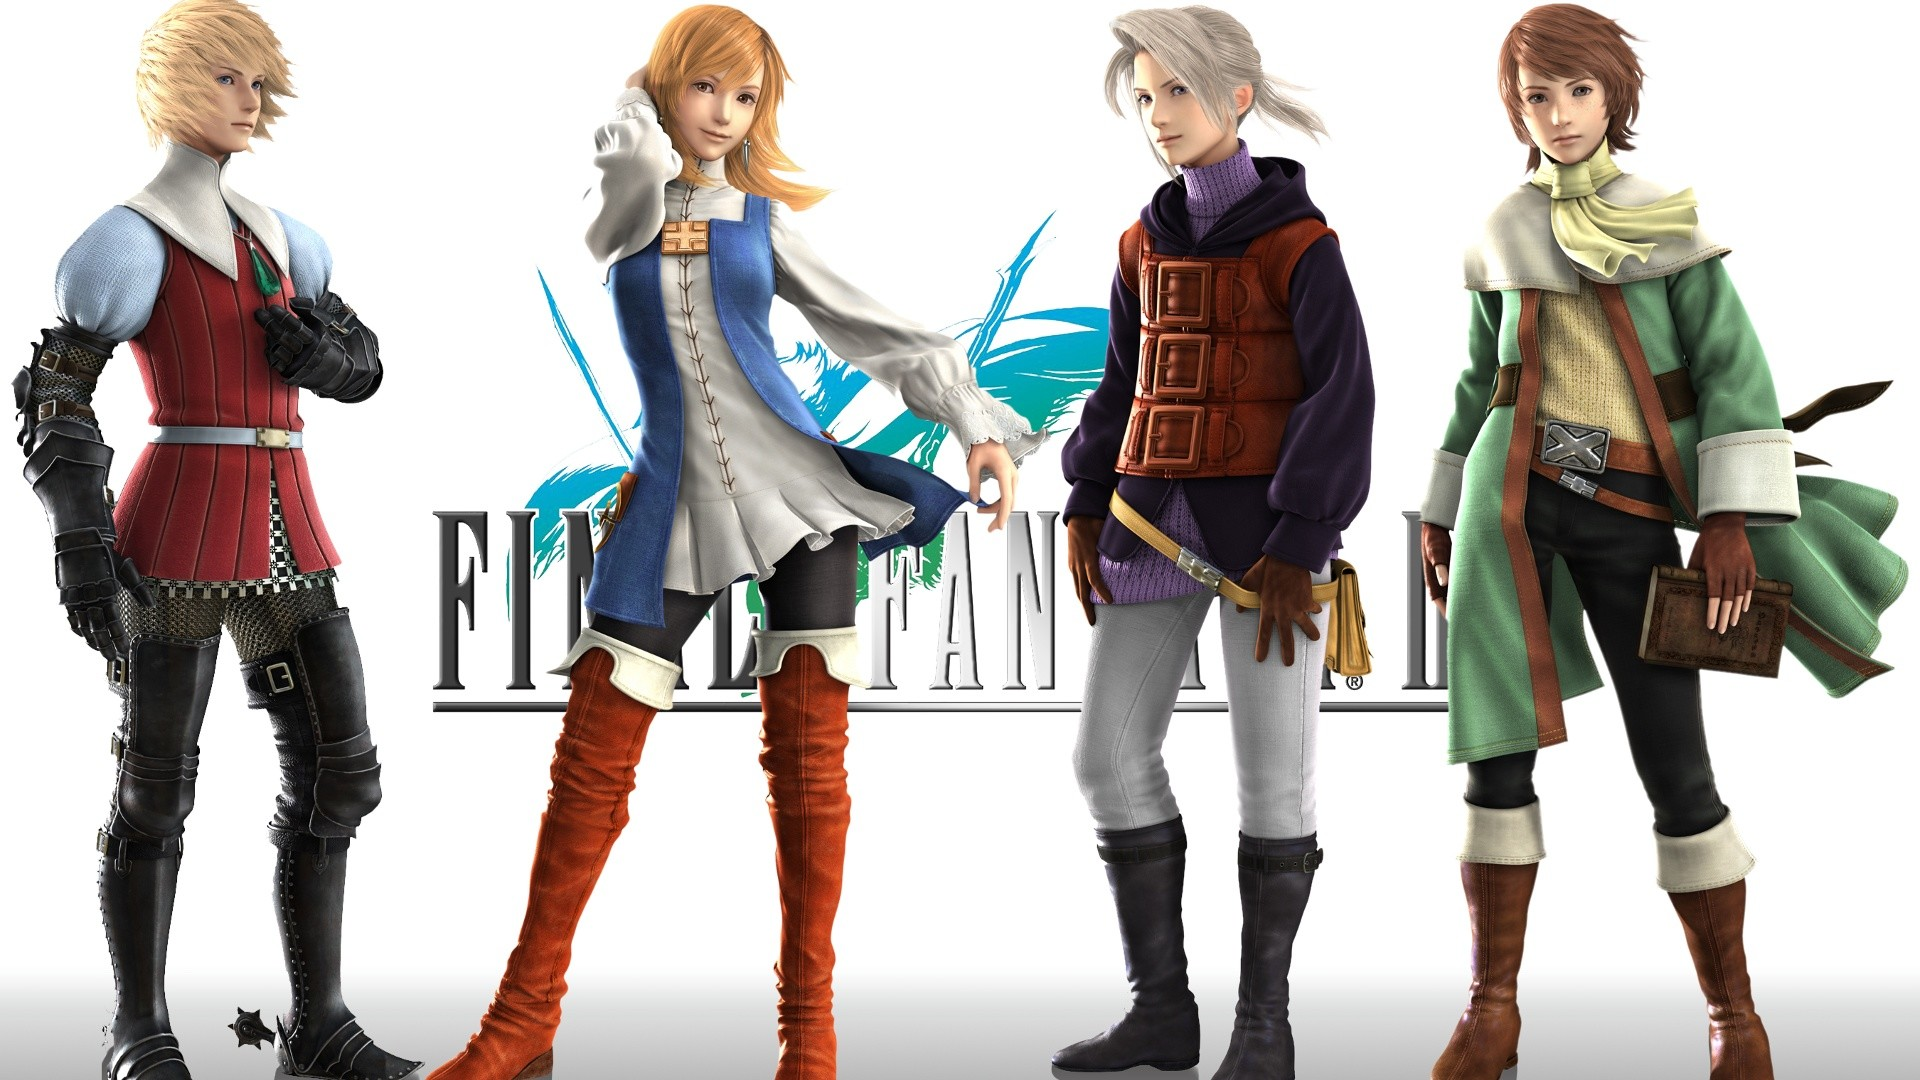 1920x1080 Final Fantasy III HD Wallpaper | Hintergrund |  | ID:677659 -  Wallpaper Abyss